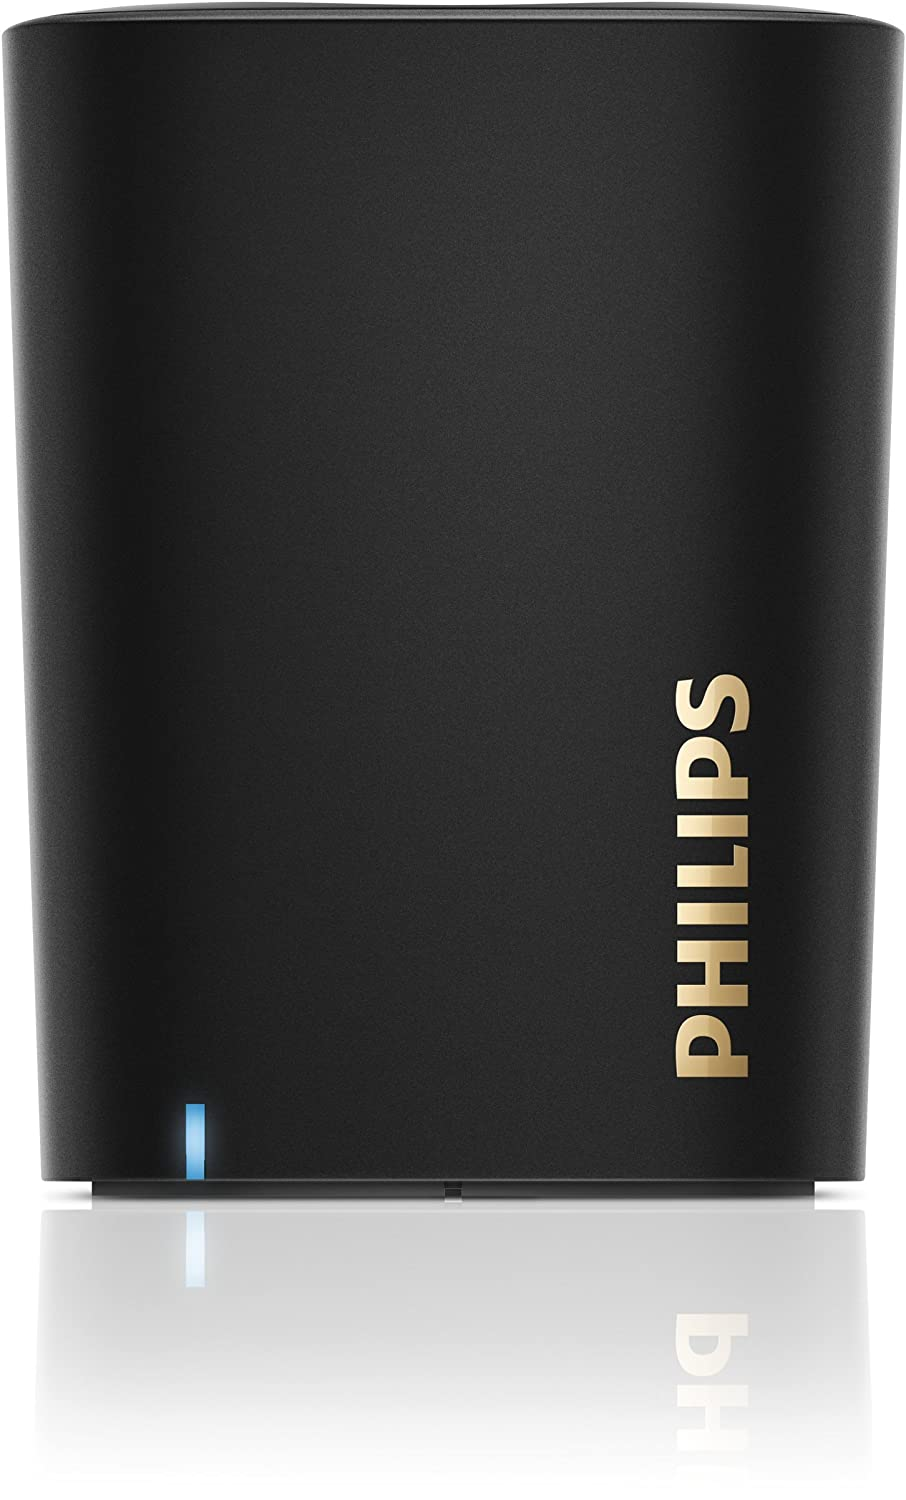 philips versus matsushita the competitive battle continues case solution